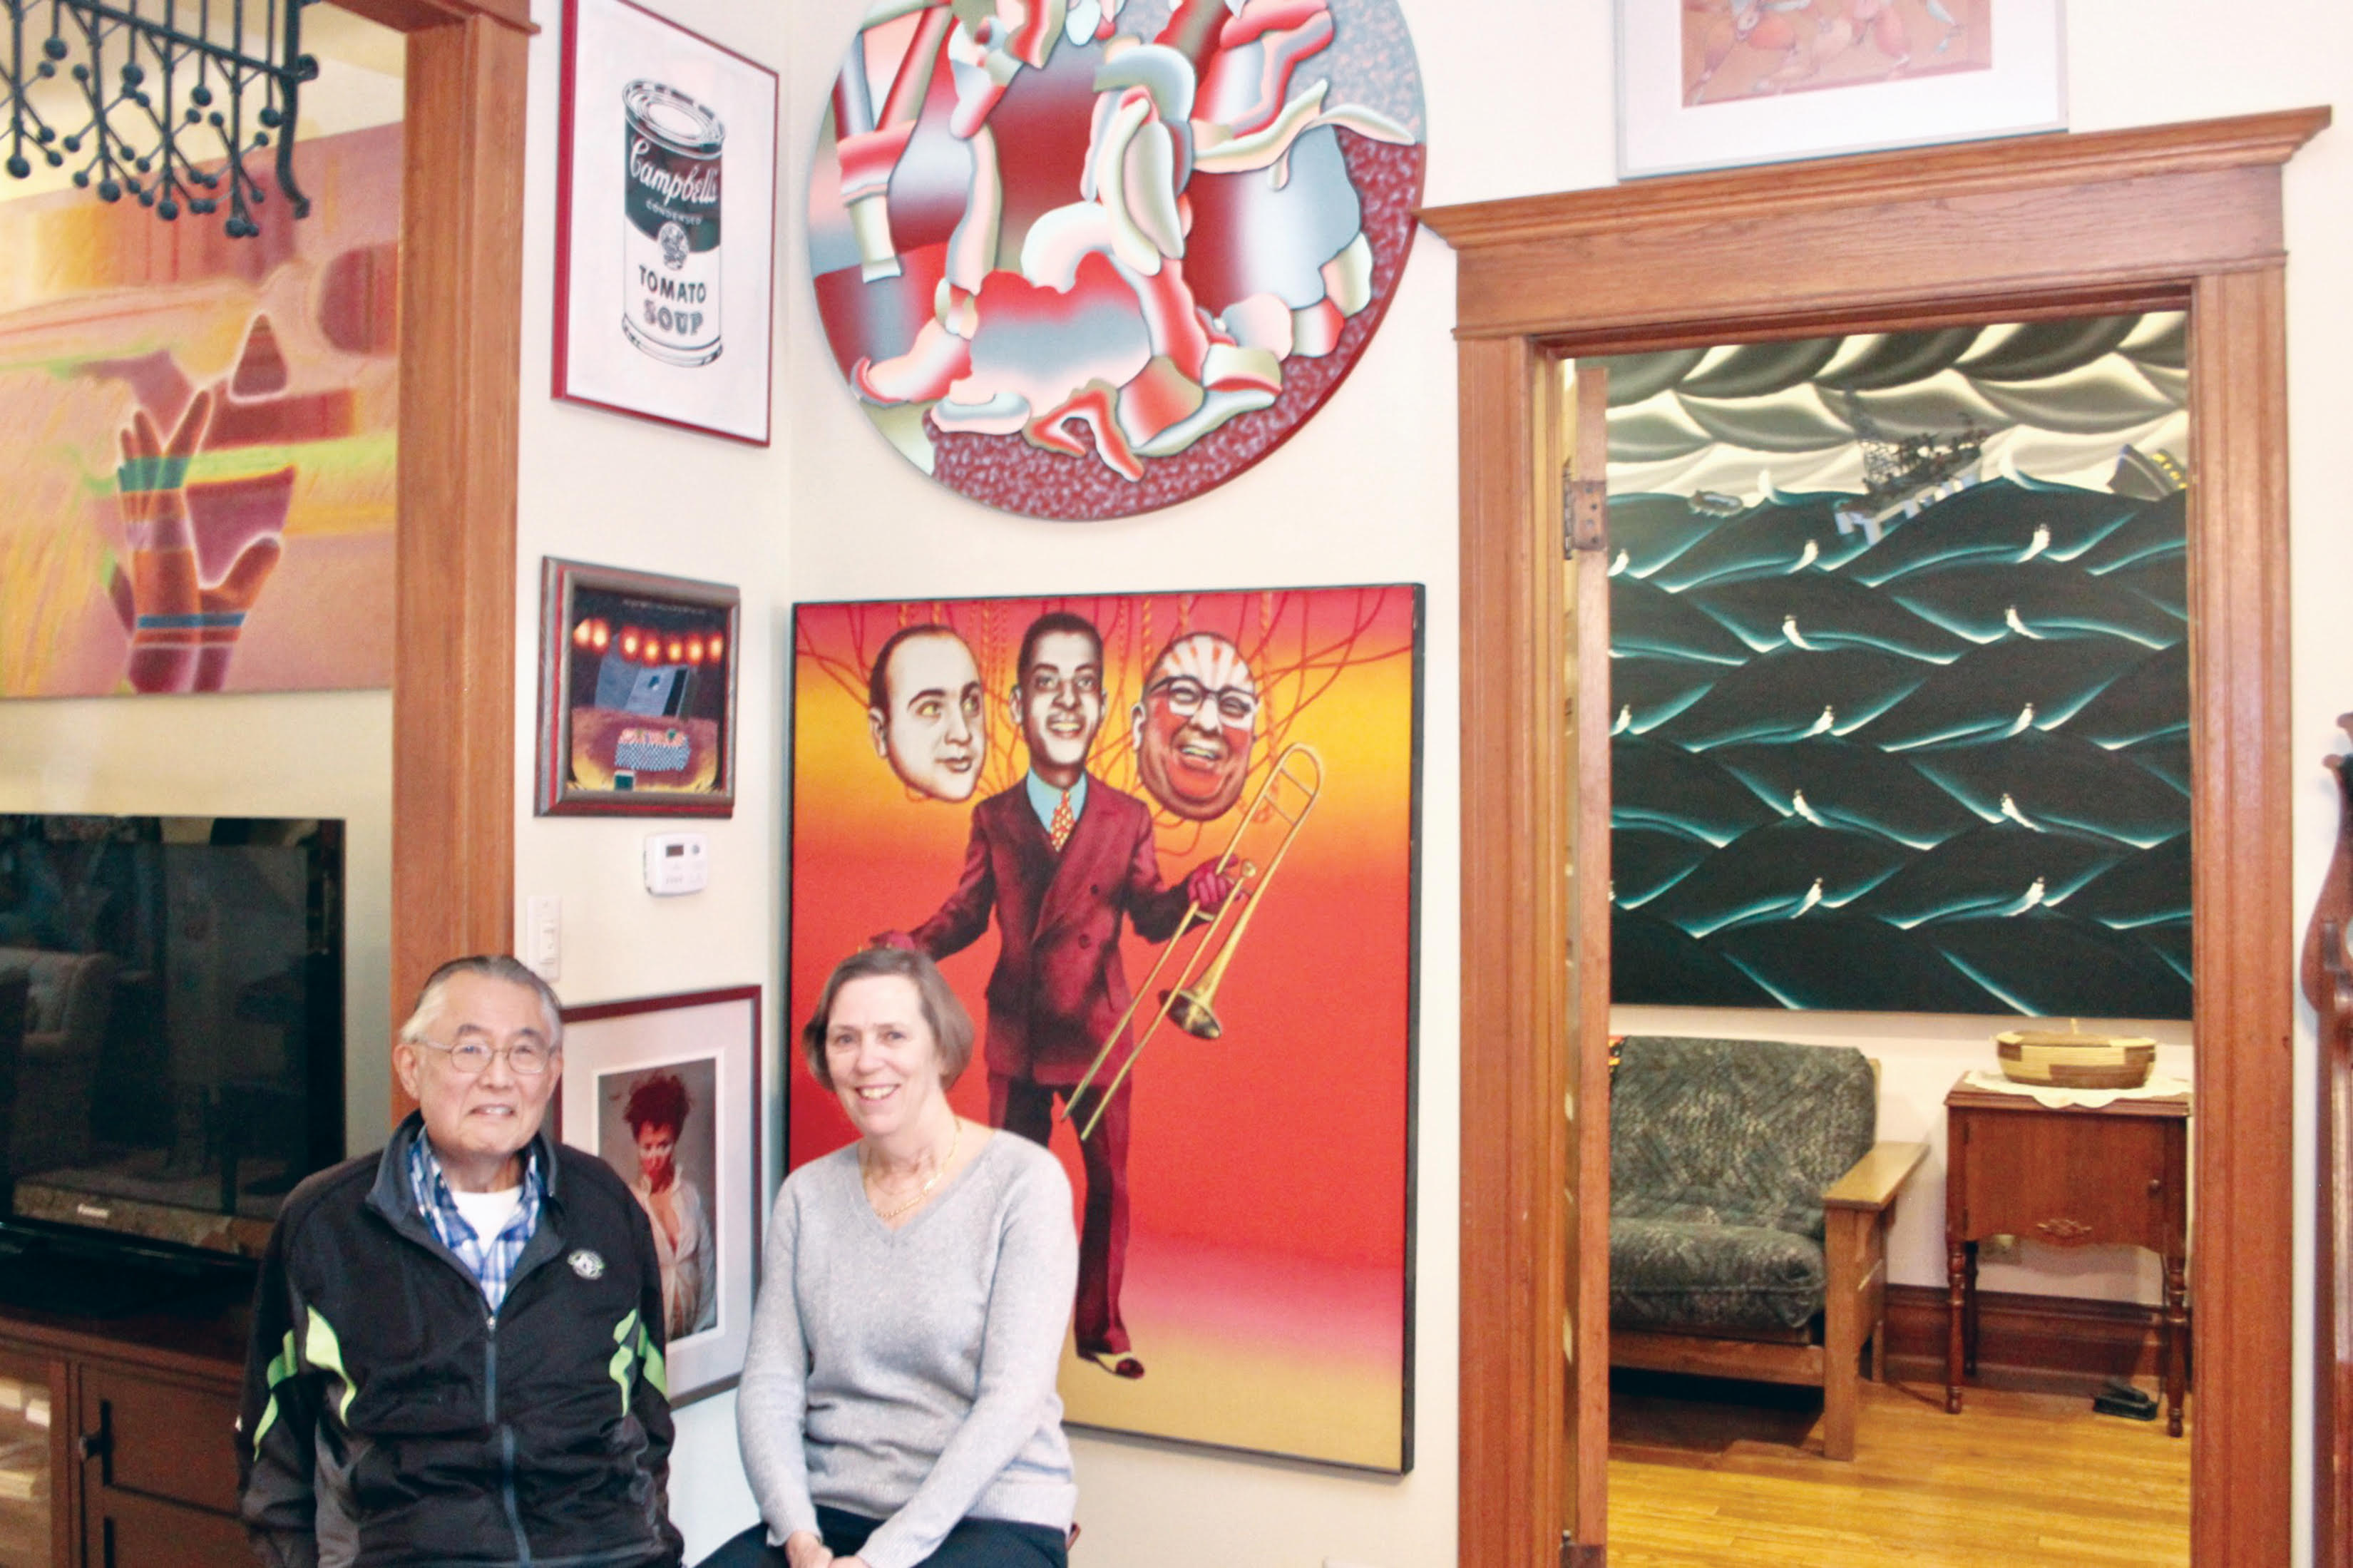 Lee Wesley and his wife Vicki Granacki, seen at their North Side home, were celebrated art collectors.